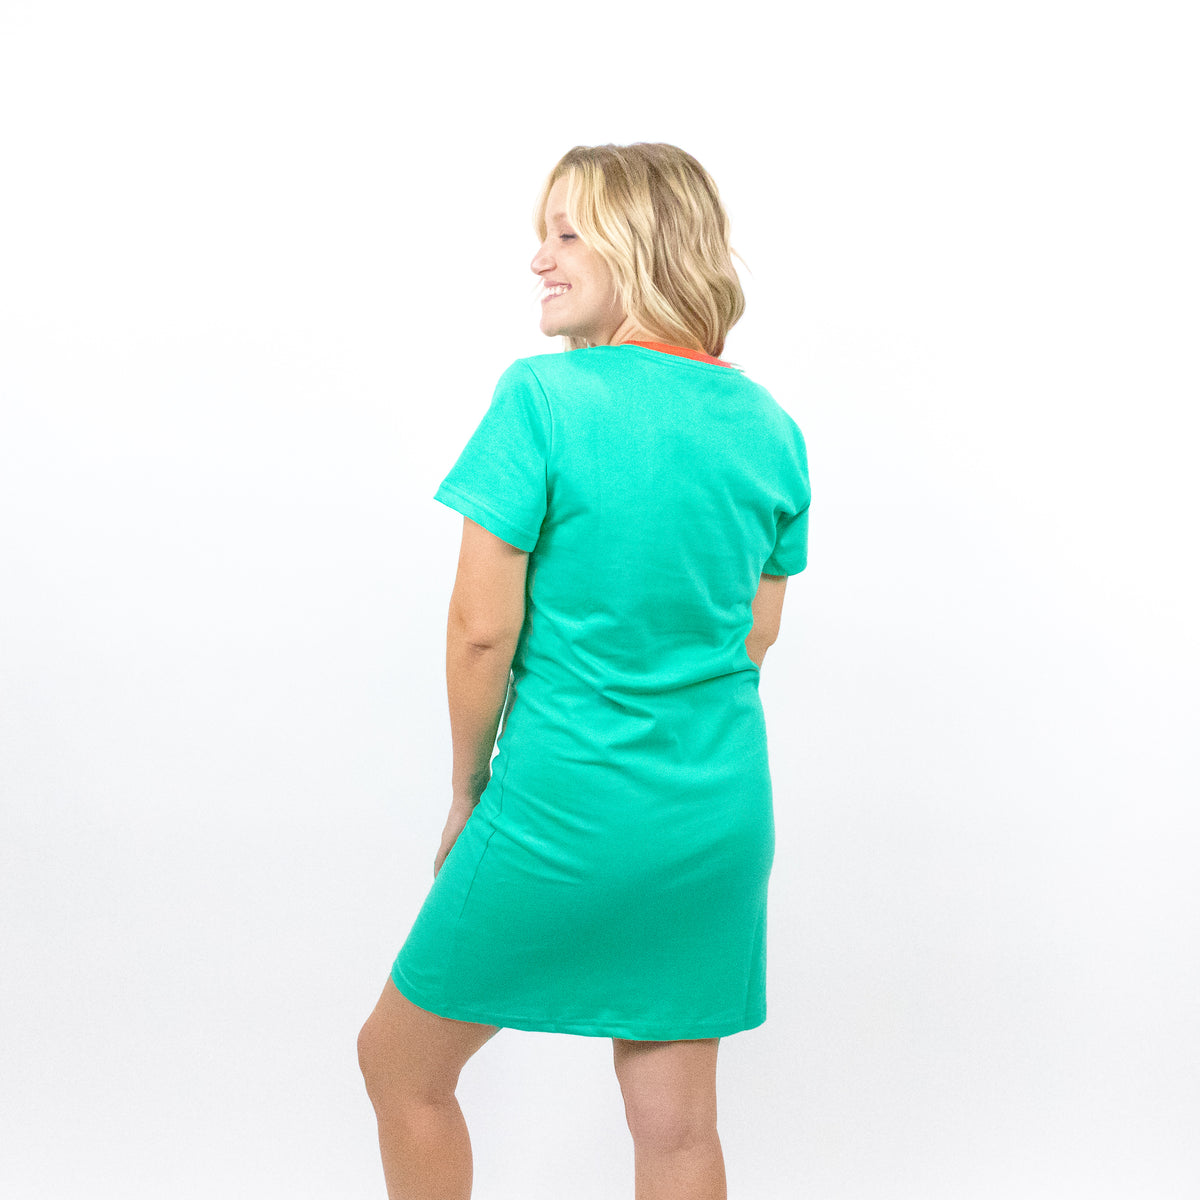 The Lost Bros Mermaid T-Shirt Dress